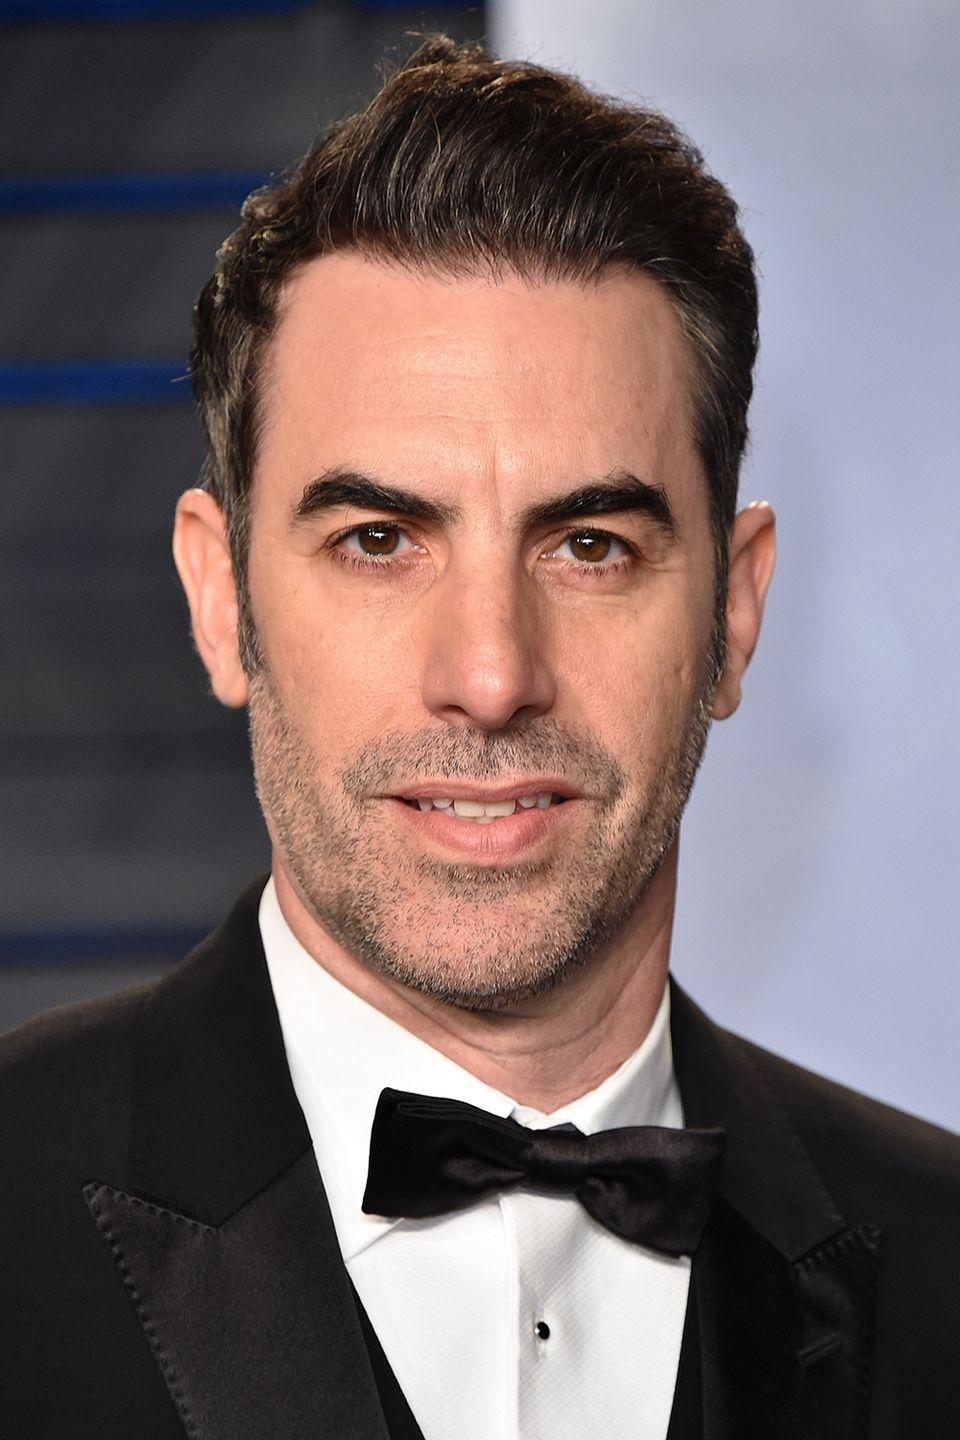 """<p>In an attempt to be funny, Cohen dressed like his character from the movie <em>The Dictator </em>at the 2012 Oscars<em>. </em>During his interview with Ryan Seacrest, he stays in character, talking in an accent—which is already close to crossing a line. Cohen makes it worse when he <a href=""""https://www.youtube.com/watch?v=mhAg0COnqds&t=3s"""" rel=""""nofollow noopener"""" target=""""_blank"""" data-ylk=""""slk:spills an urn he claims is filled with Kim Jong Un's ashes"""" class=""""link rapid-noclick-resp"""">spills an urn he claims is filled with Kim Jong Un's ashes</a> all over Seacrest. Whether it was on purpose or not, this was a red carpet they'll both remember.</p>"""